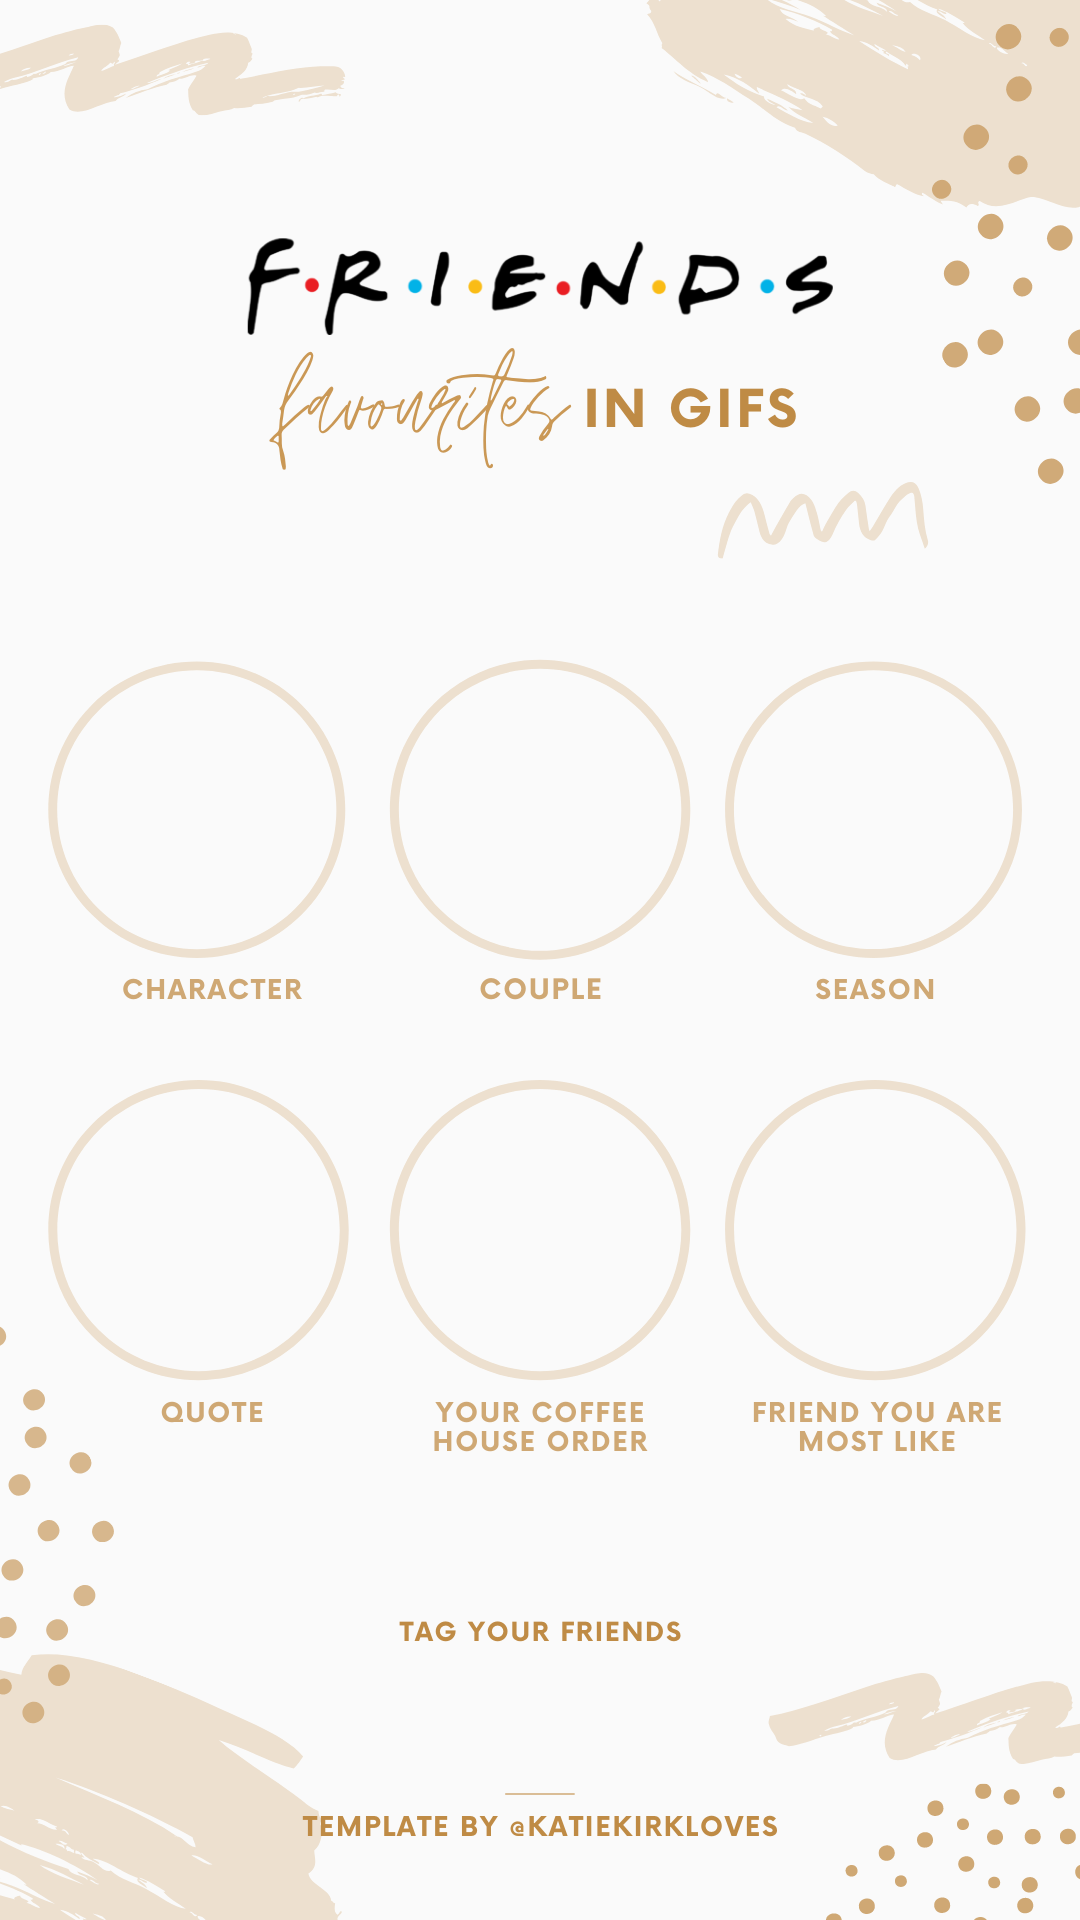 My Instagram Story Templates, Katie Kirk Loves, UK Blogger, UK Lifestyle Blogger, Story Templates, Instagram Stories, Friends TV Show, Friends Netflix, Friends Comedy, Friends Instagram Story Templates, The Greatest Showman, The Greatest Showman Story Templates